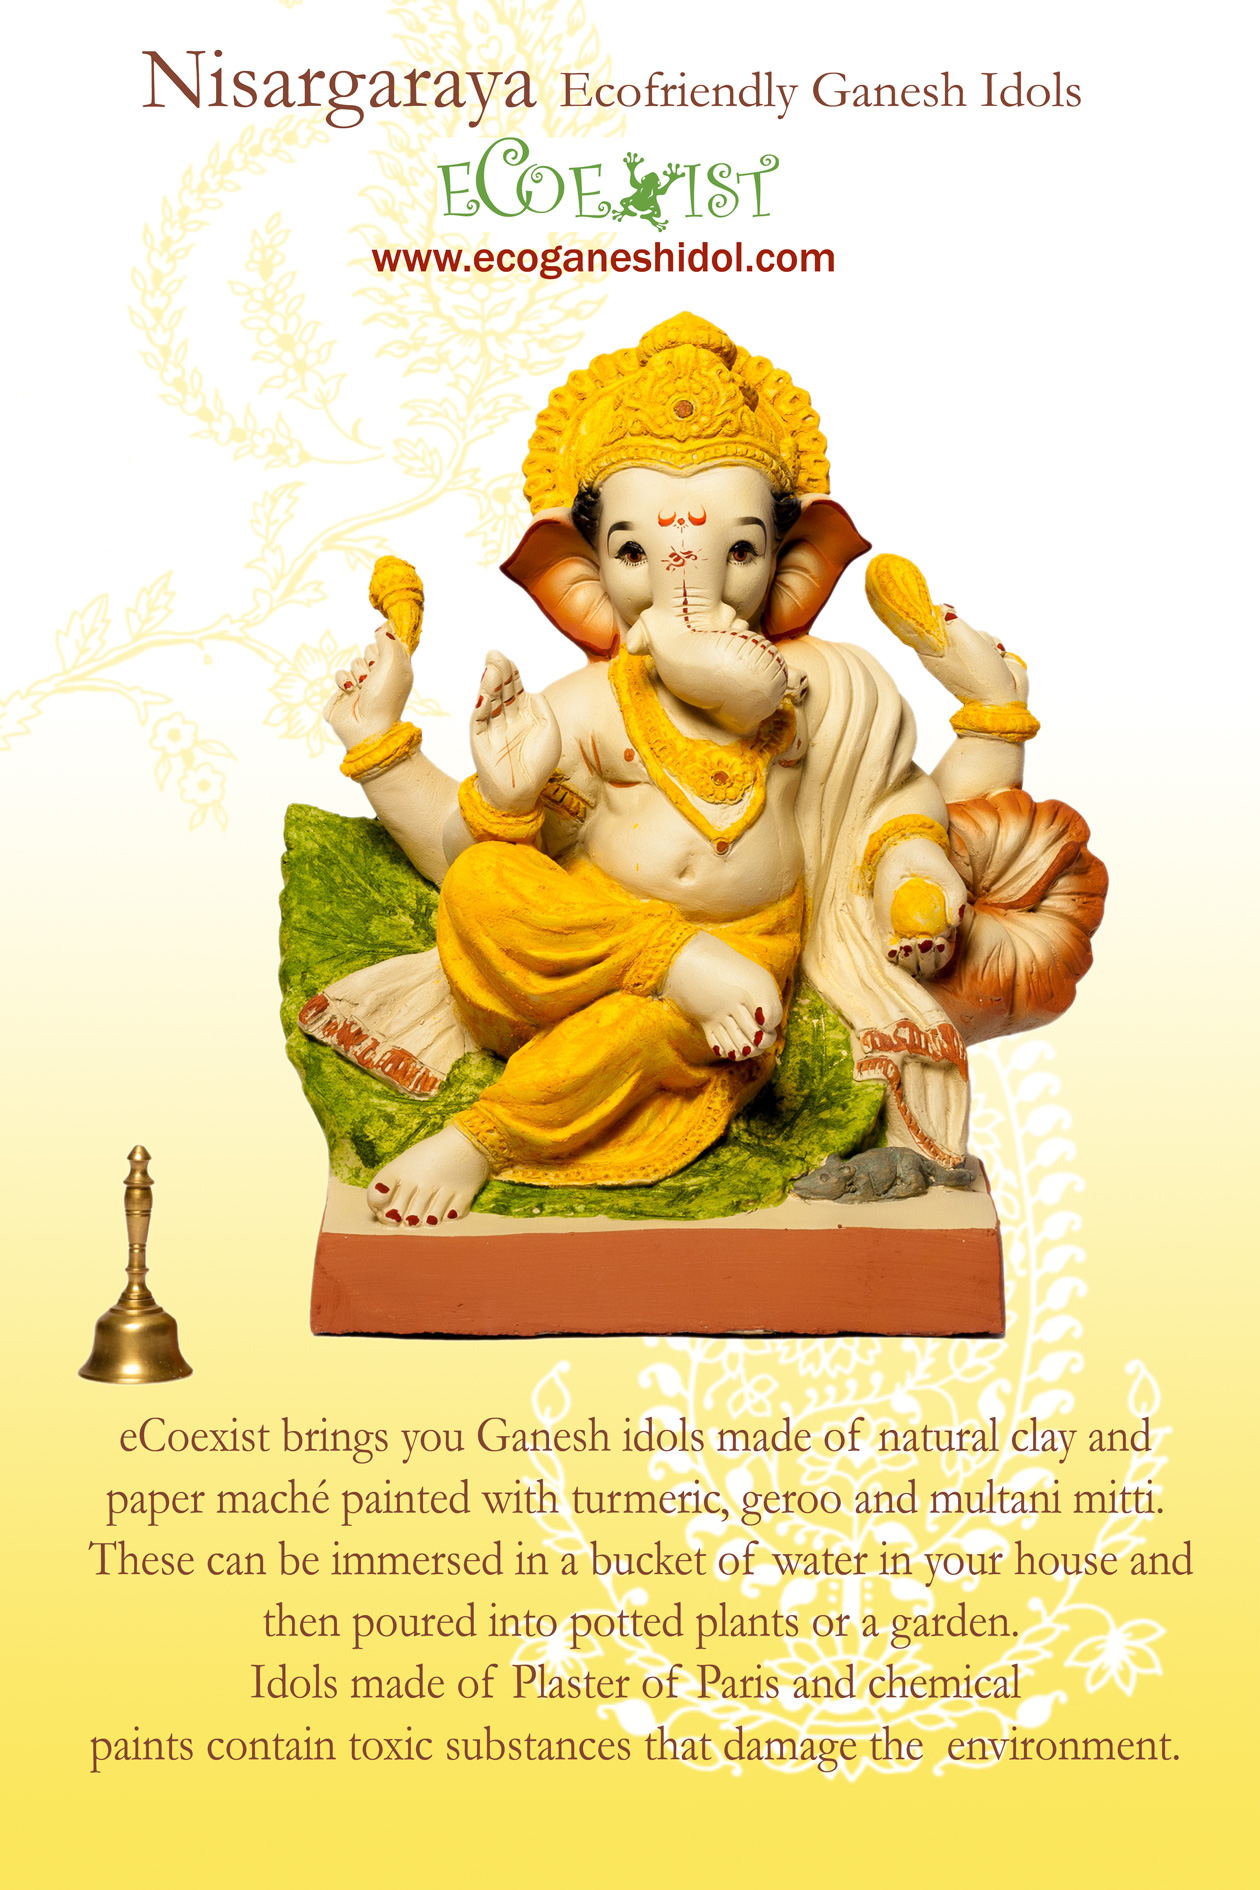 Ecofriendly Clay Ganesh Idol by ecoexist